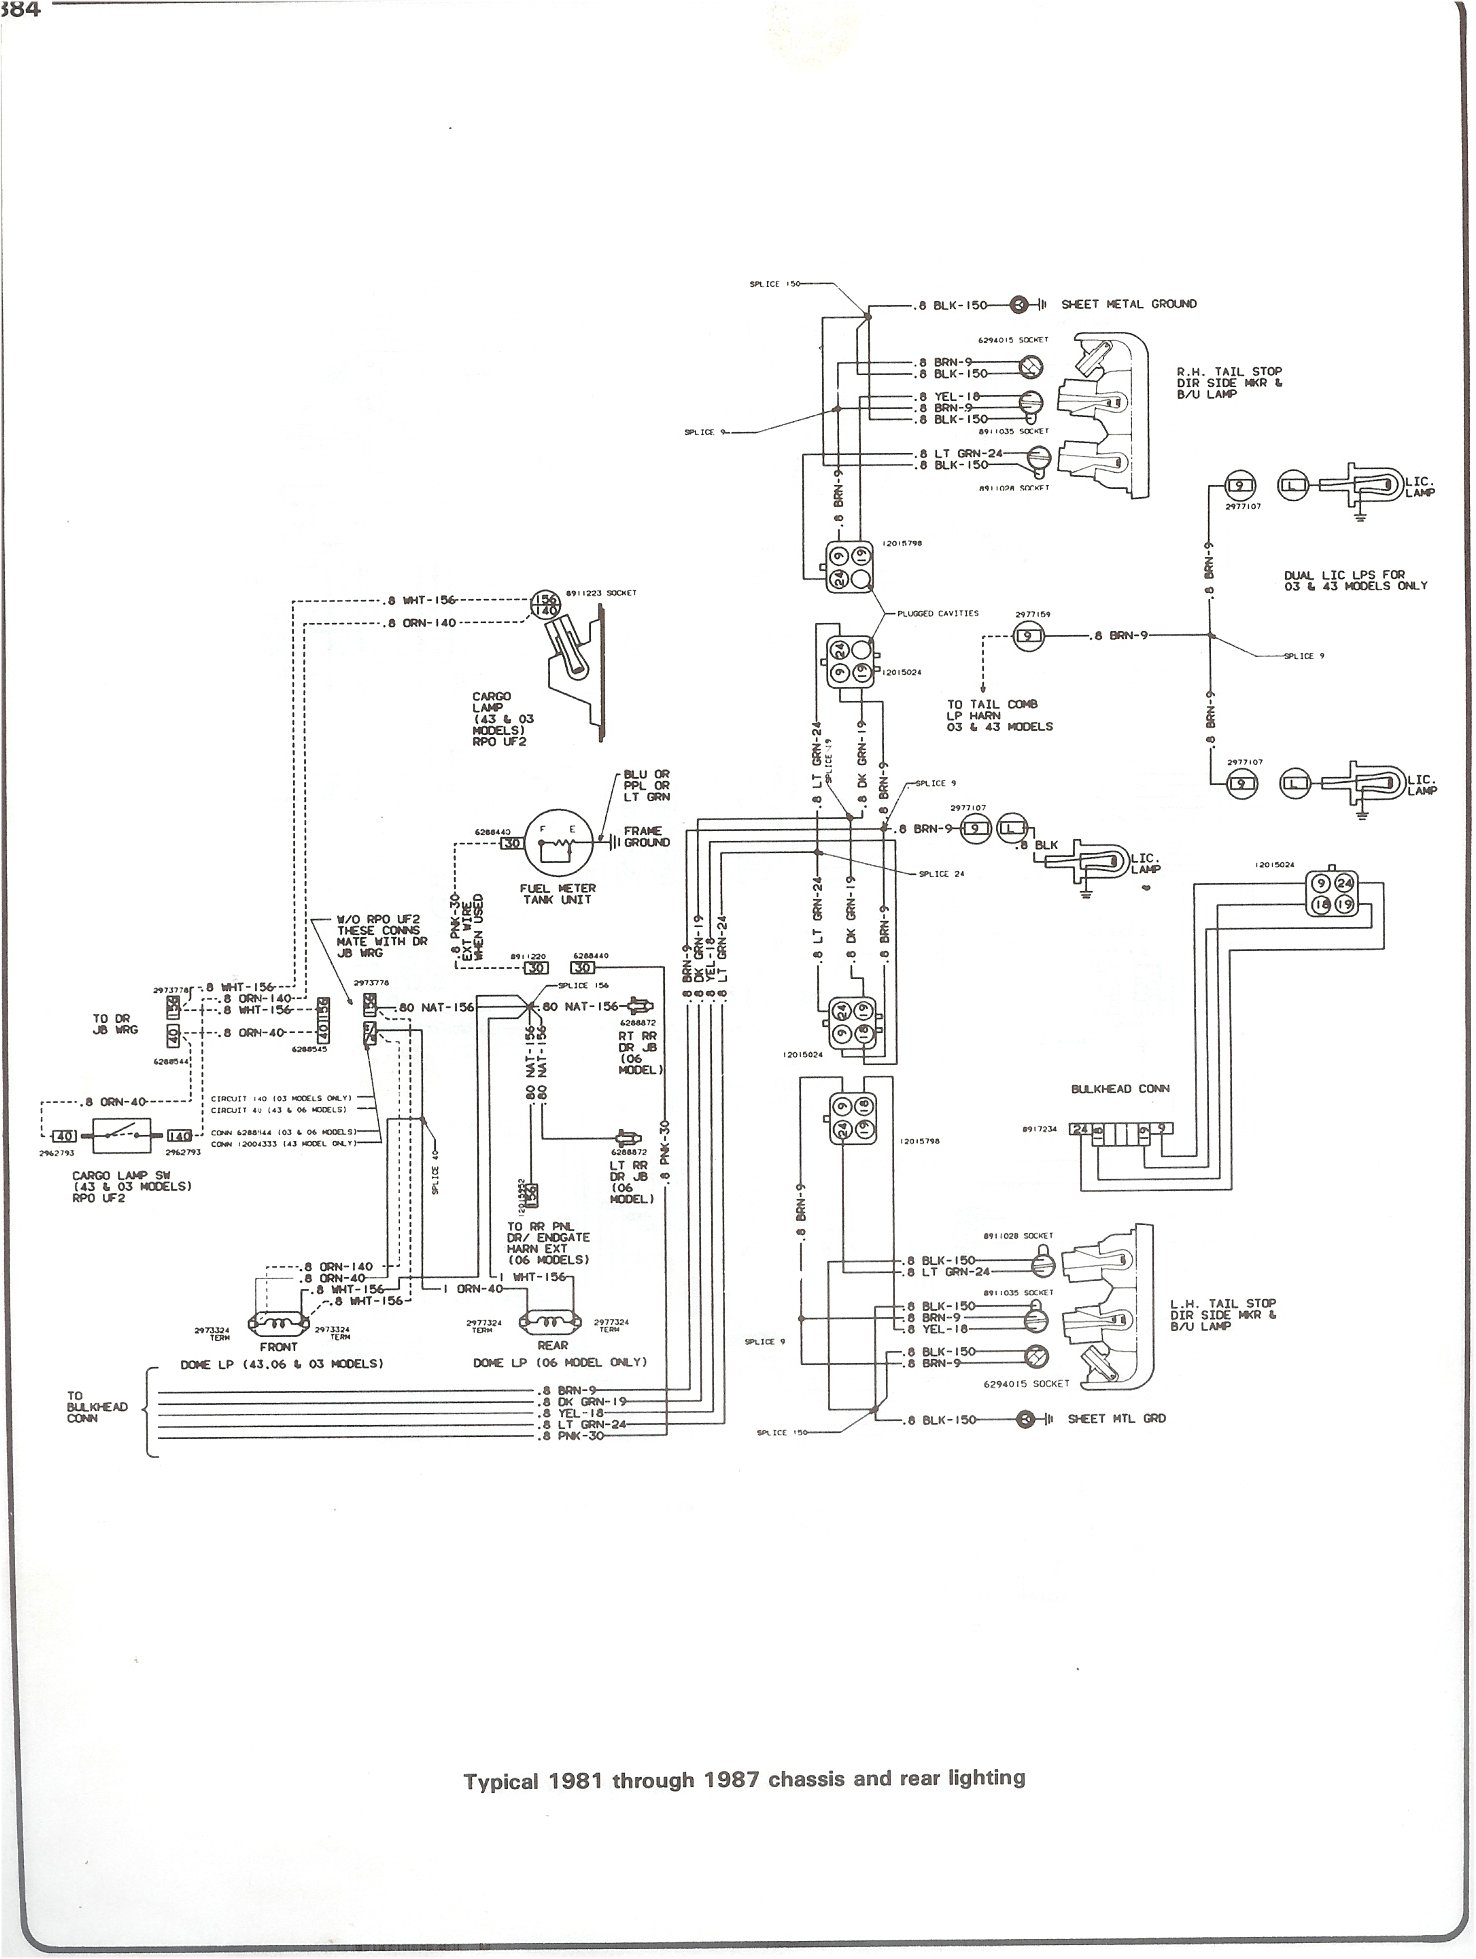 1995 Pontiac Grand Prix Wiring Diagram Control 06 Engine Chevy Silverado Drawing At Getdrawings Com Free For Radio